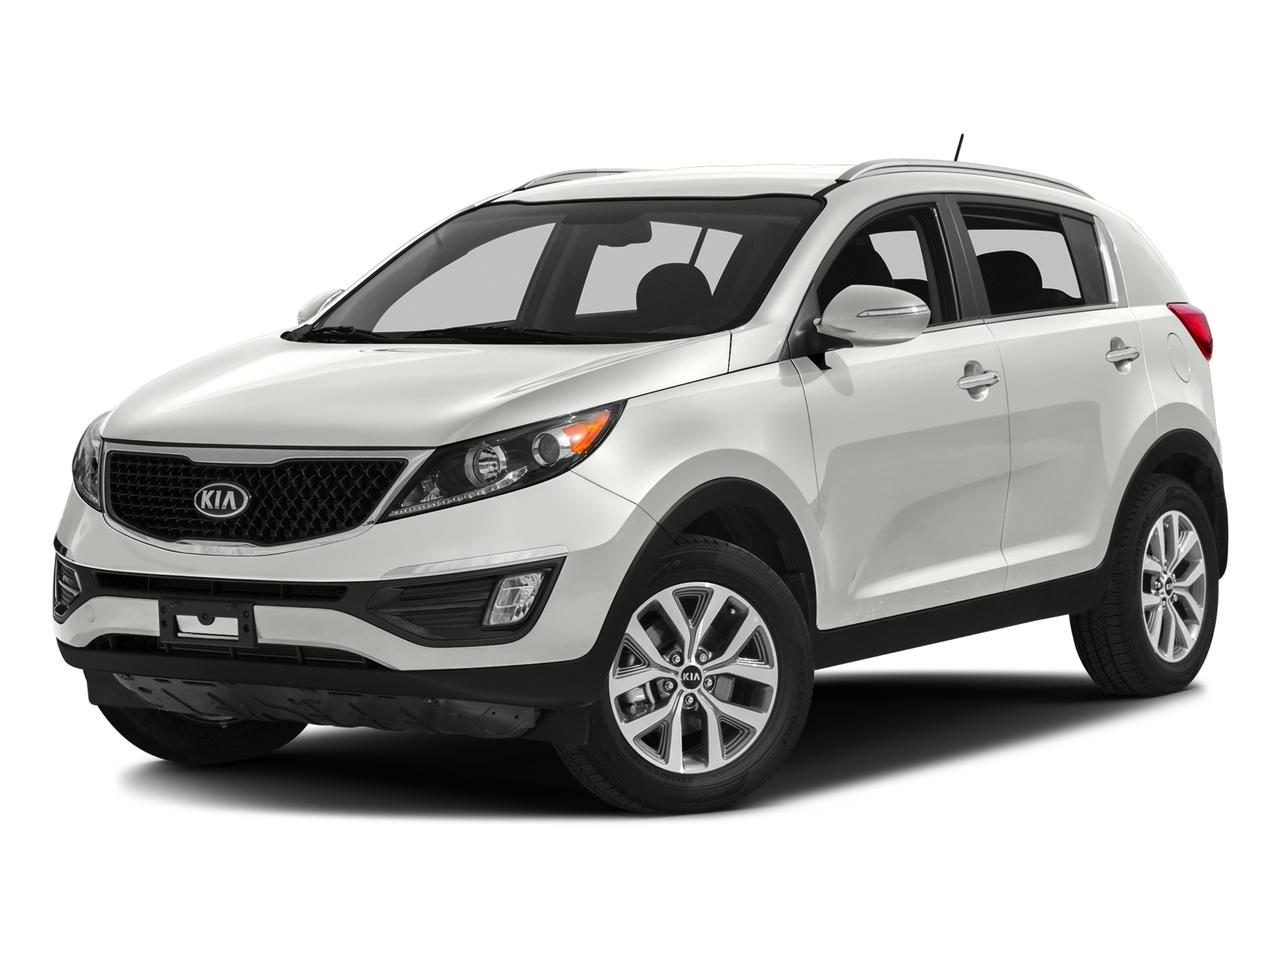 2016 Kia Sportage Vehicle Photo in Concord, NC 28027